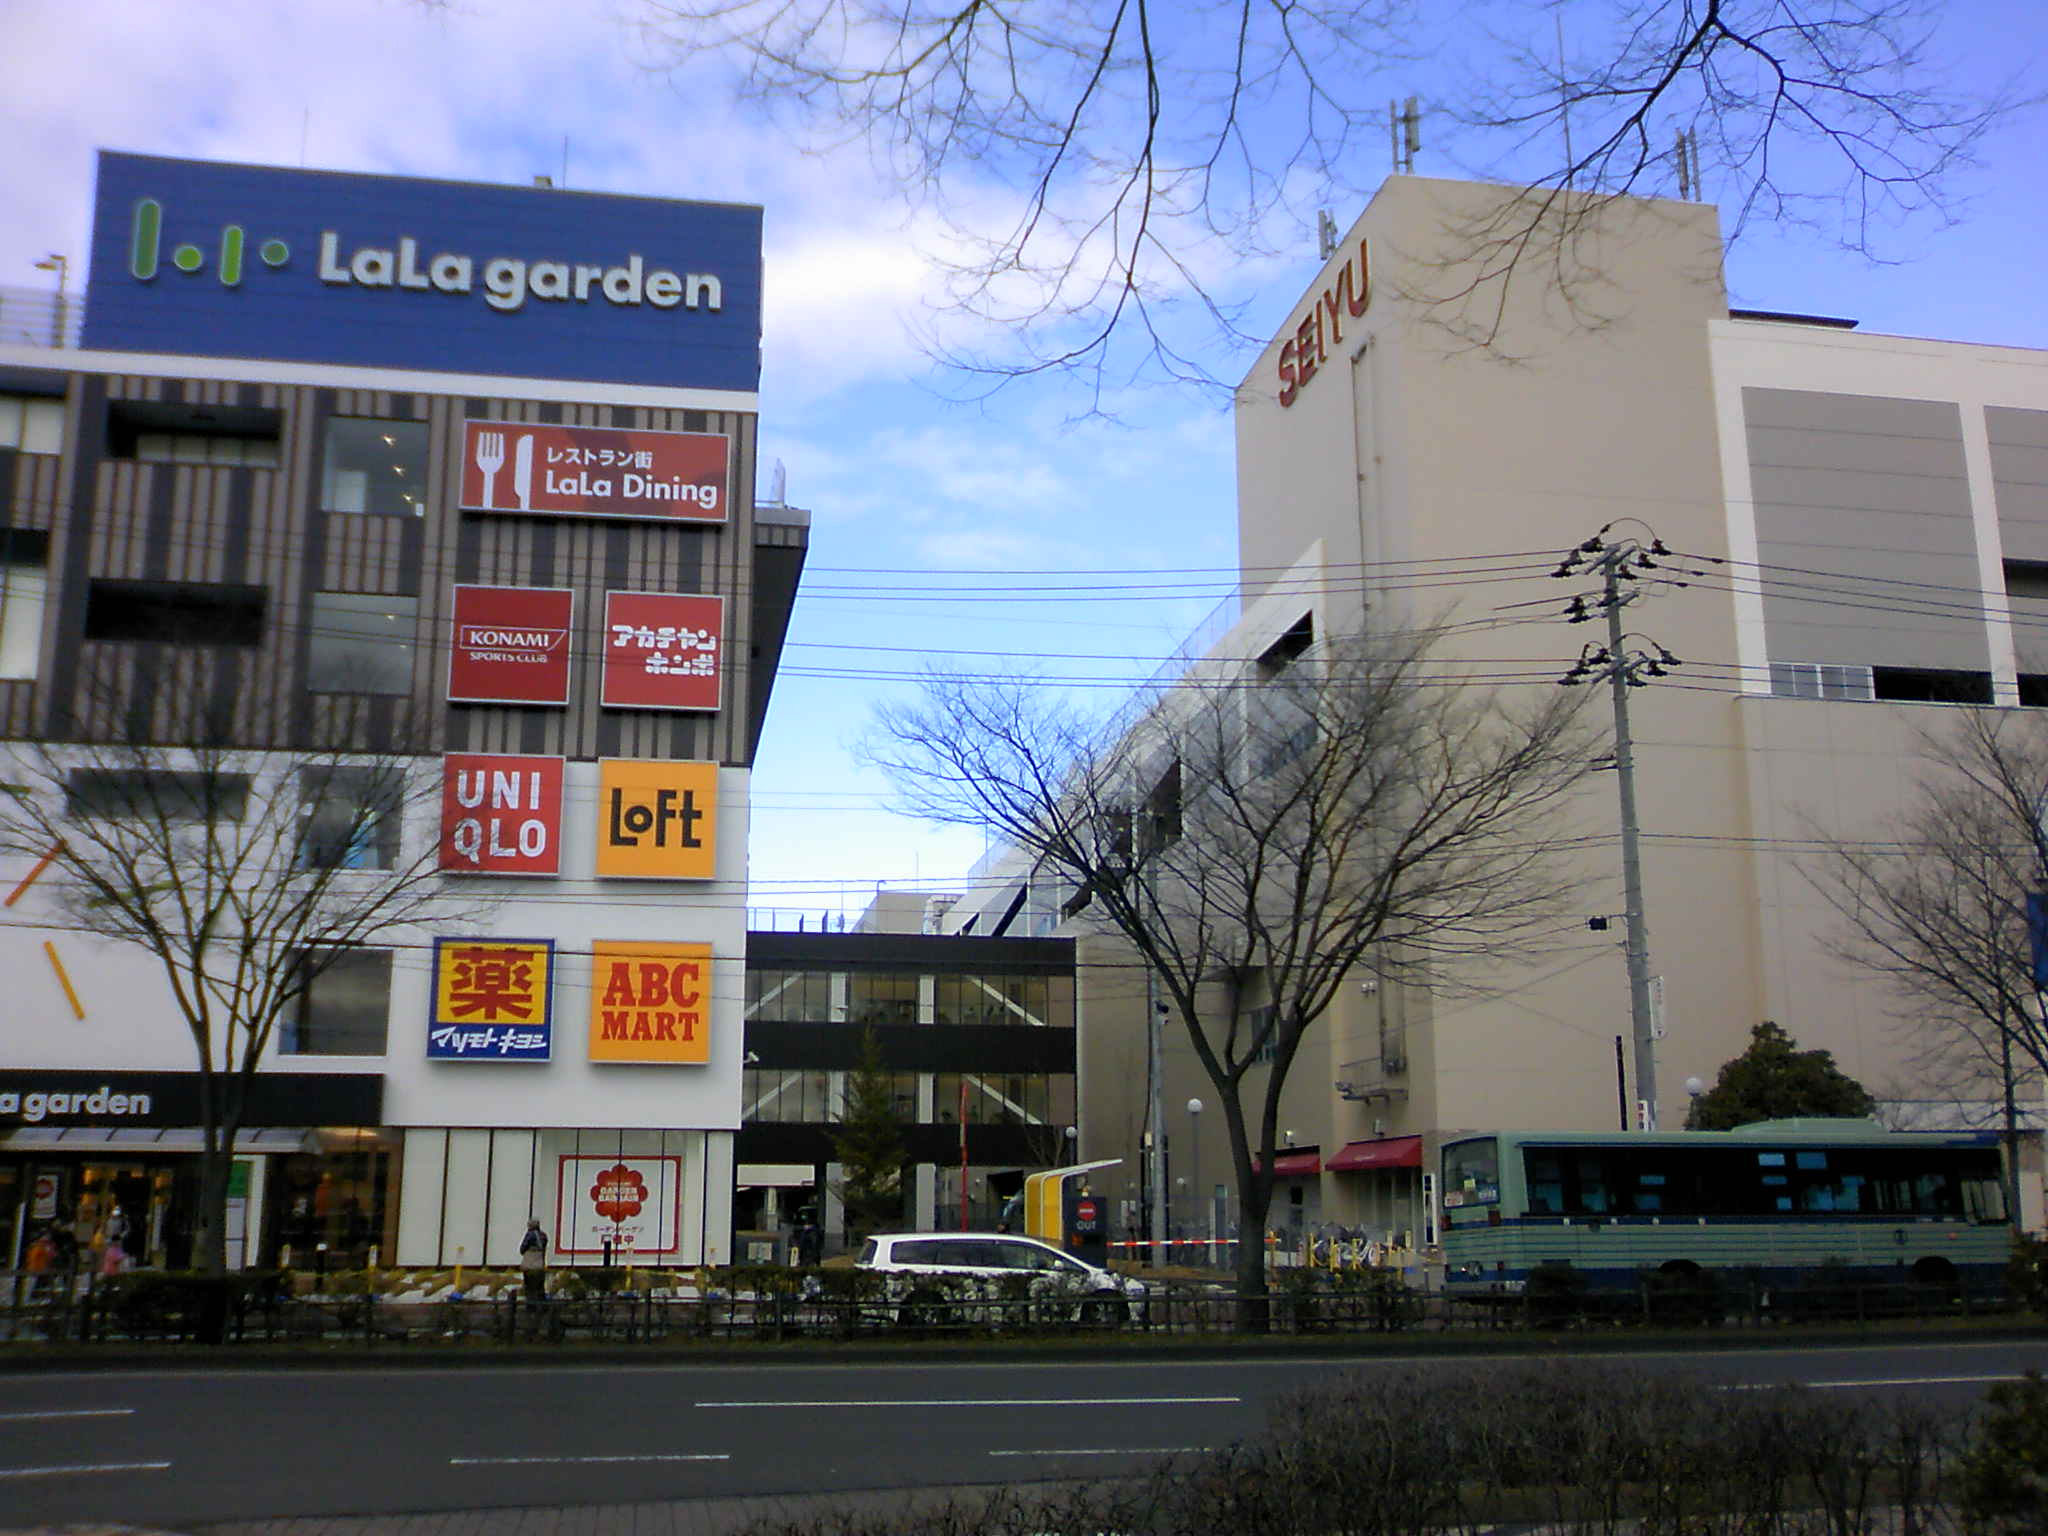 The Mall & Lala Garden